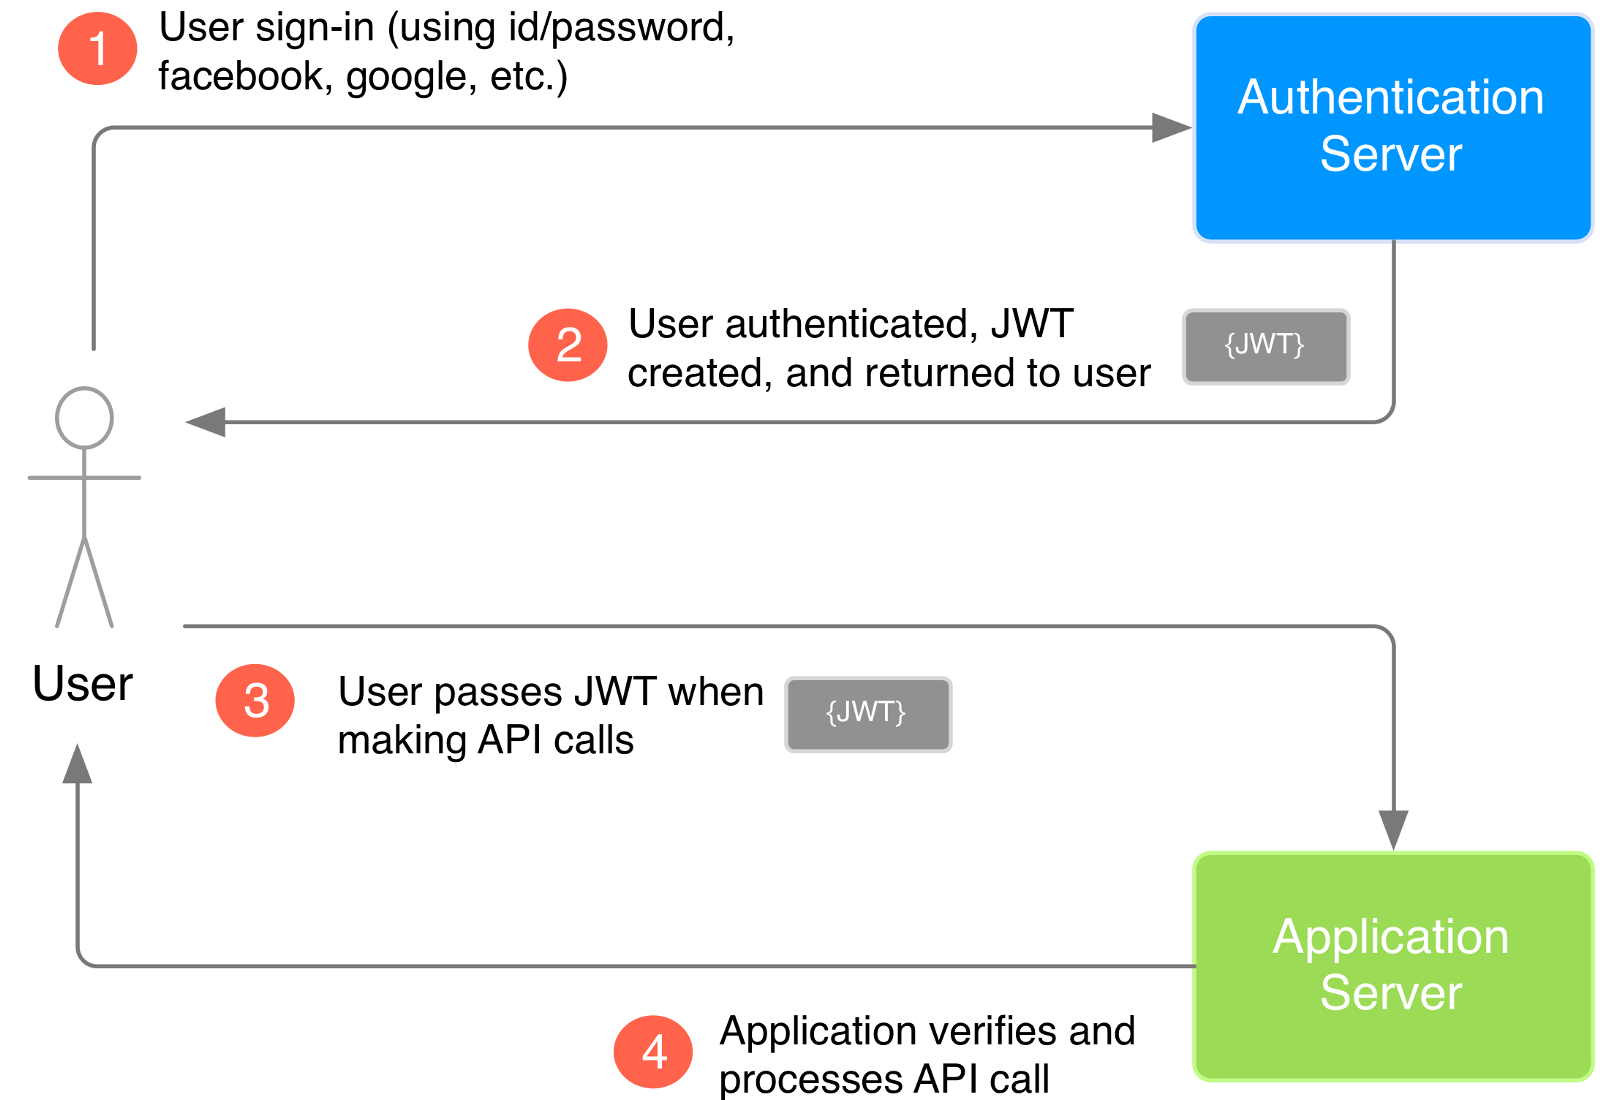 How an application uses JWT to verify the authenticity of a user.